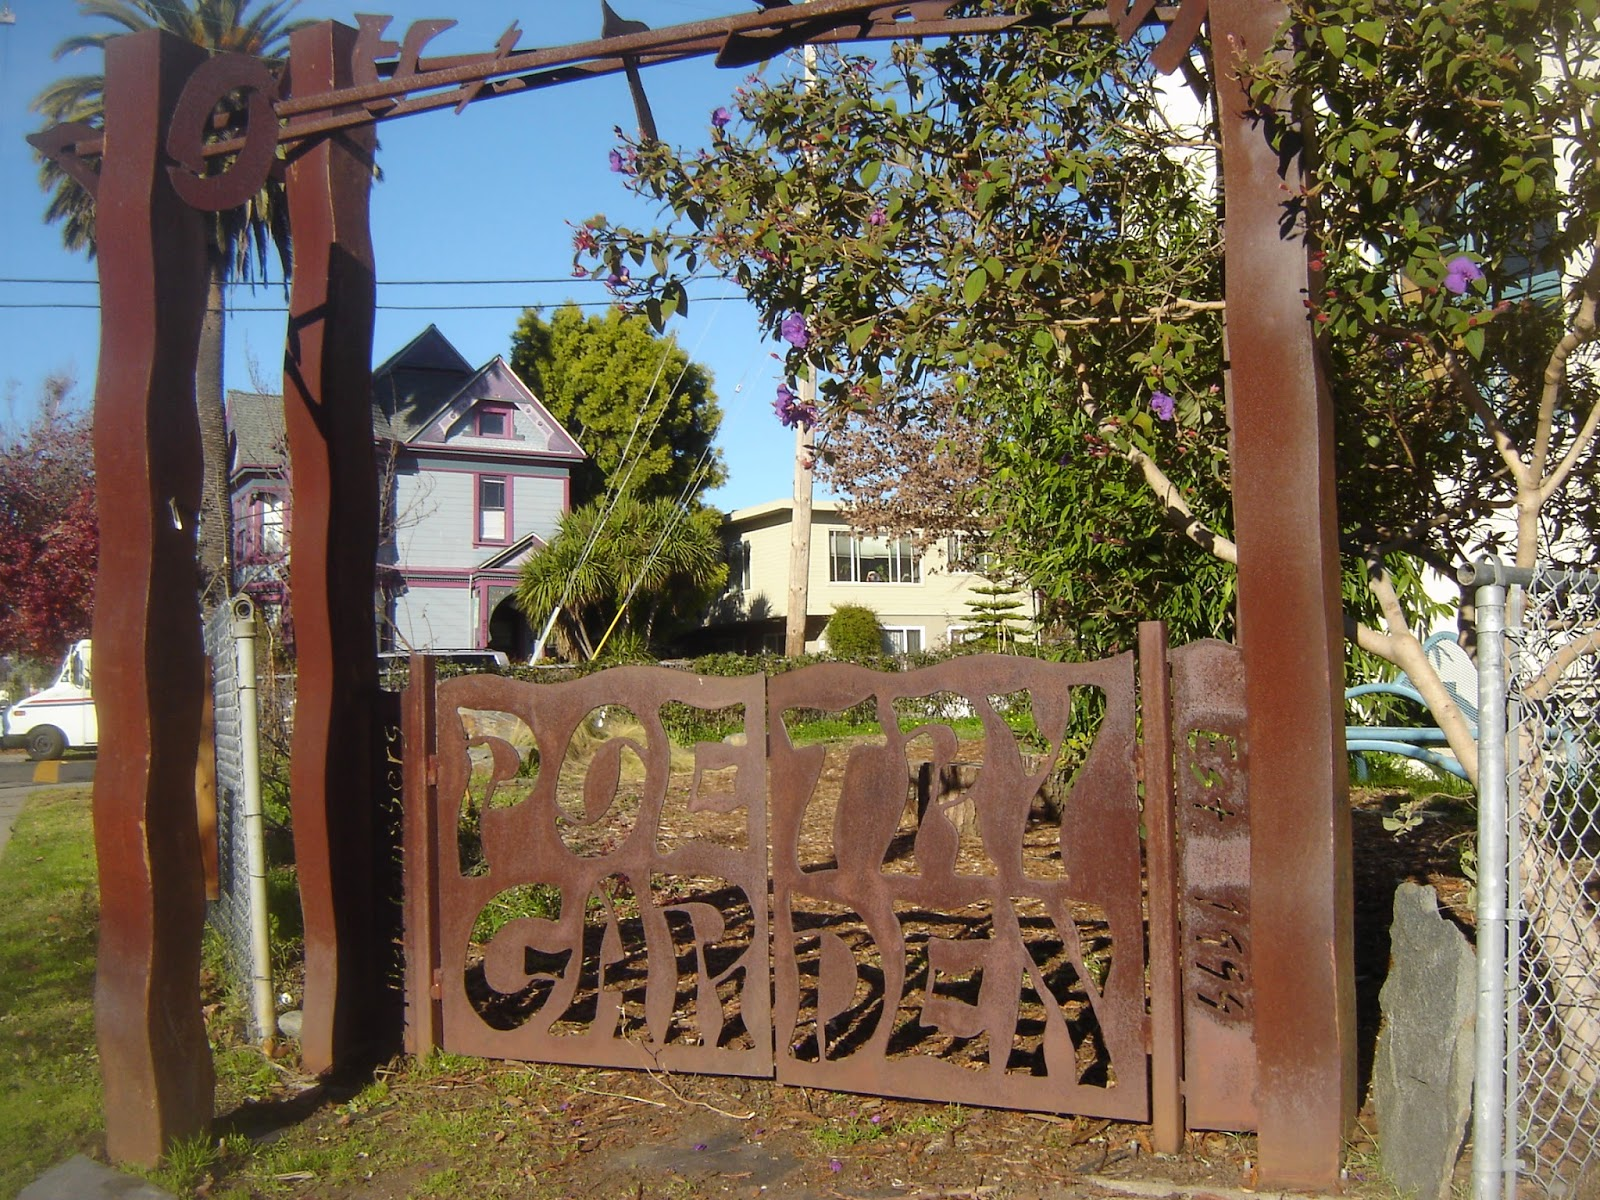 Berkeley Flaneur: The Allen Ginsberg Poetry Garden